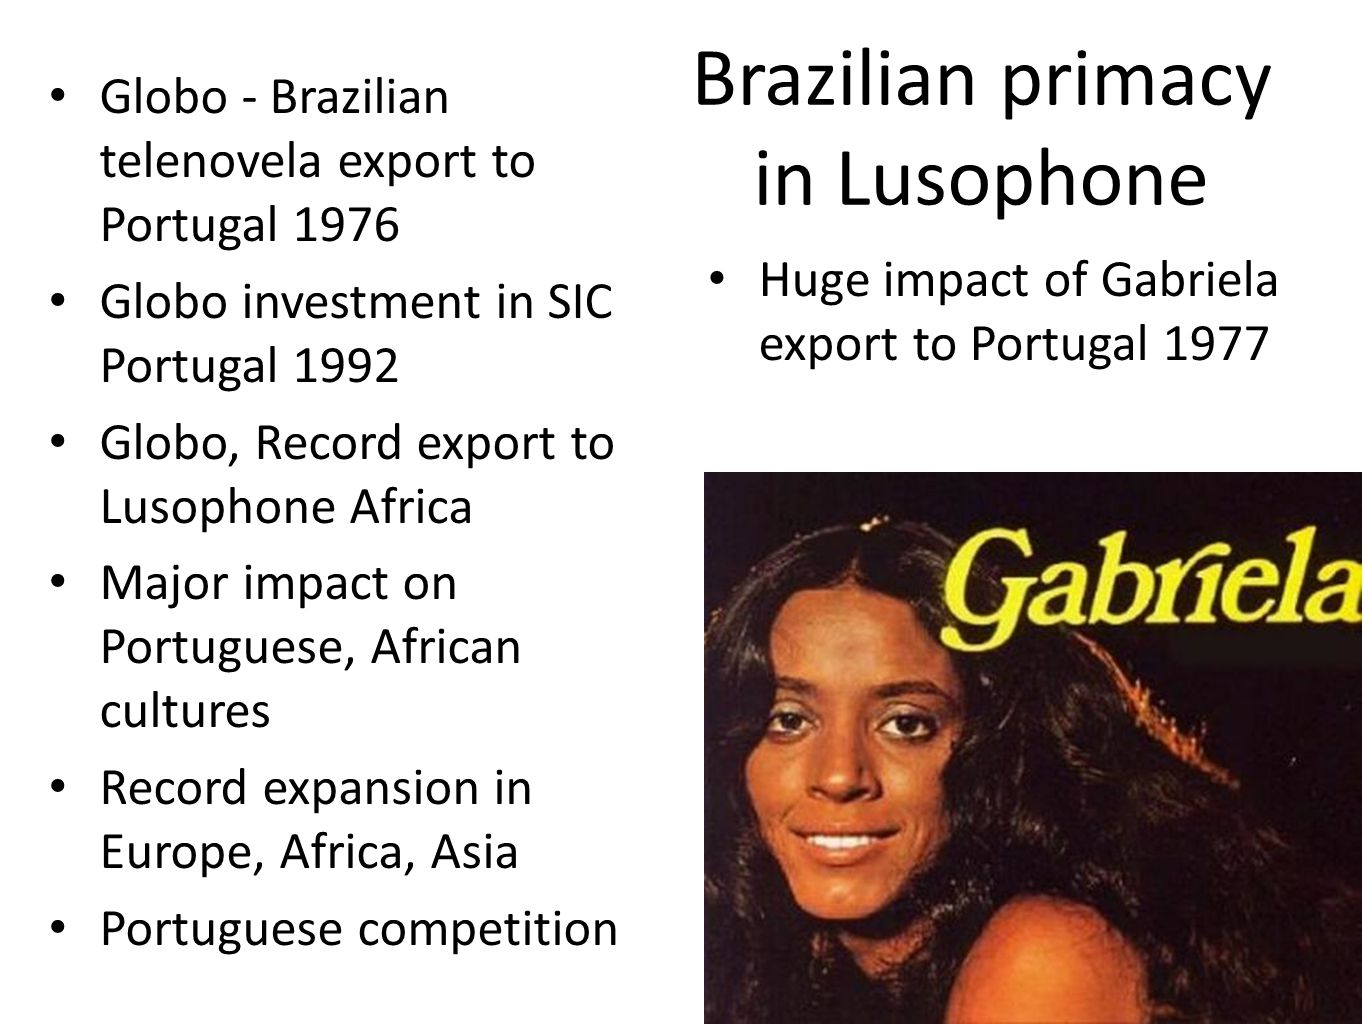 Brazilian primacy in Lusophone Globo - Brazilian telenovela export to Portugal 1976 Globo investment in SIC Portugal 1992 Globo, Record export to Lusophone Africa Major impact on Portuguese, African cultures Record expansion in Europe, Africa, Asia Portuguese competition Huge impact of Gabriela export to Portugal 1977